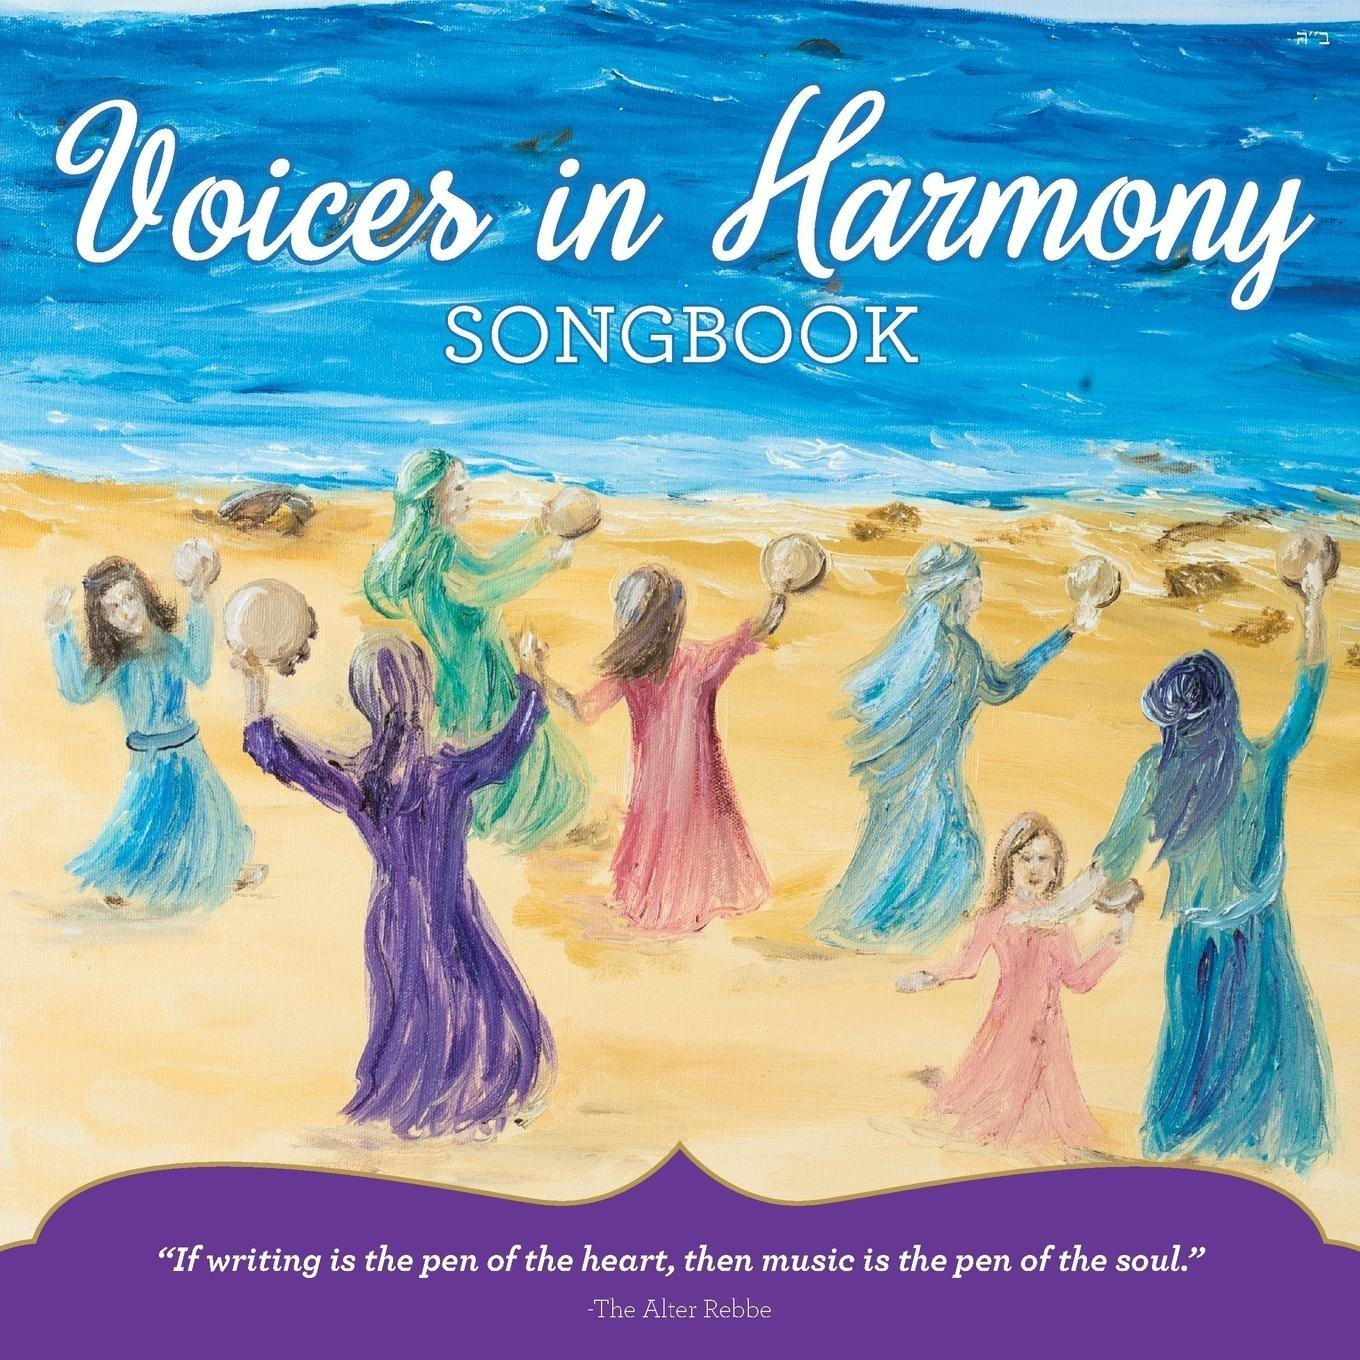 [Hardcover] Voices in Harmony Songbook 00035